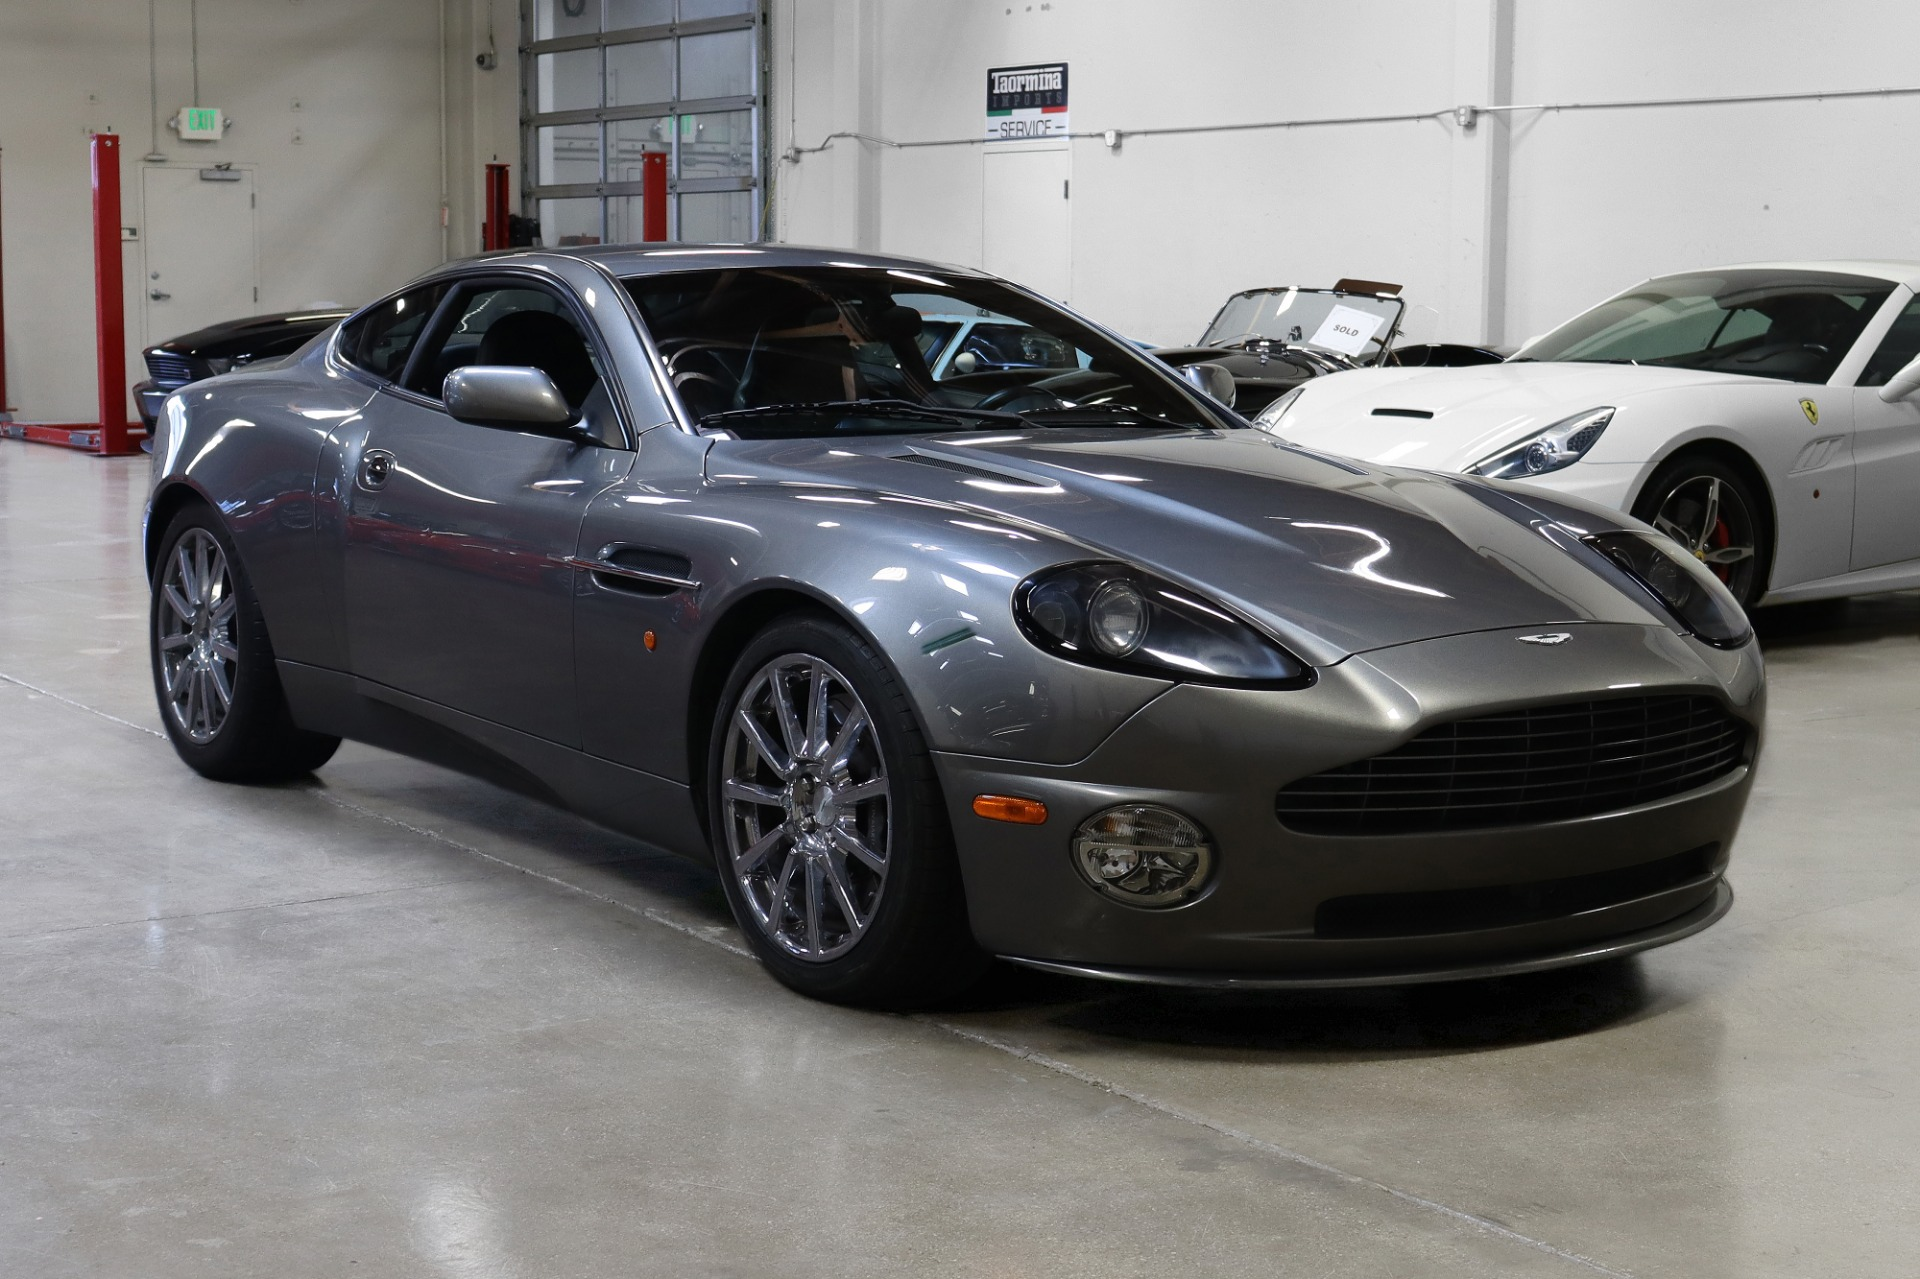 Used 2005 Aston Martin V12 Vanquish S for sale $84,995 at San Francisco Sports Cars in San Carlos CA 94070 1